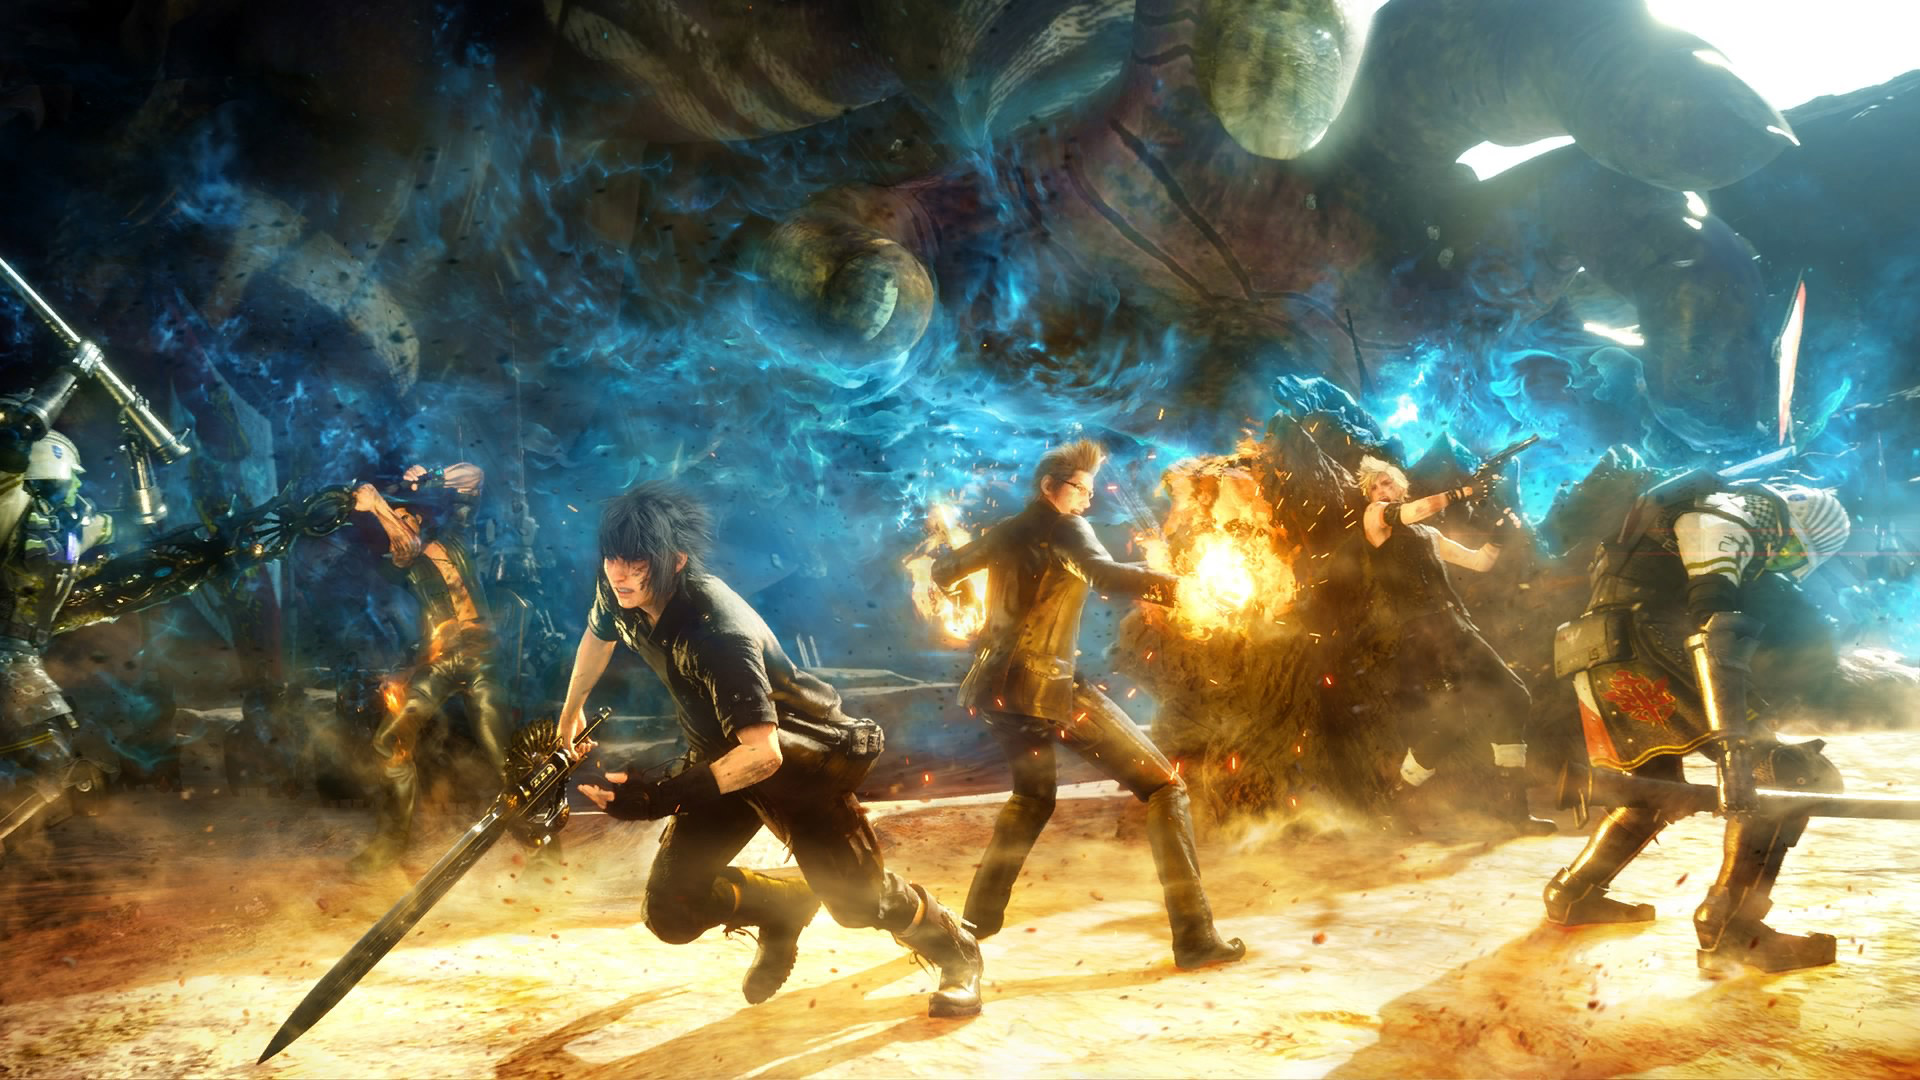 Final Fantasy XV Wallpaper in 1920x1080